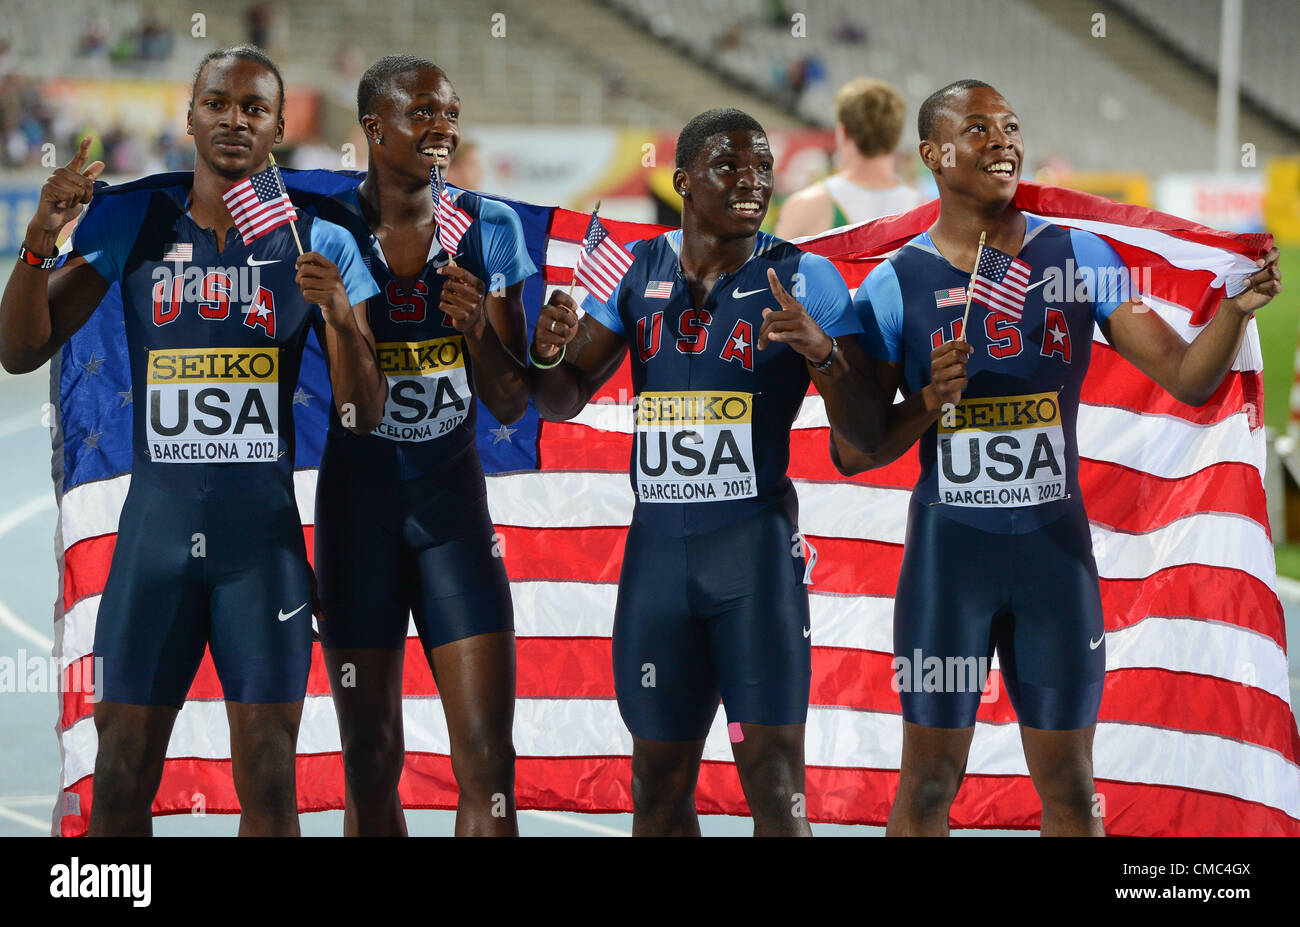 BARCELONA, Spain: Saturday 14 July 2012, Aaron Ernest, Arthur Delaney, Aldrich Bailey and Tyreek Hill (all USA) - Stock Image